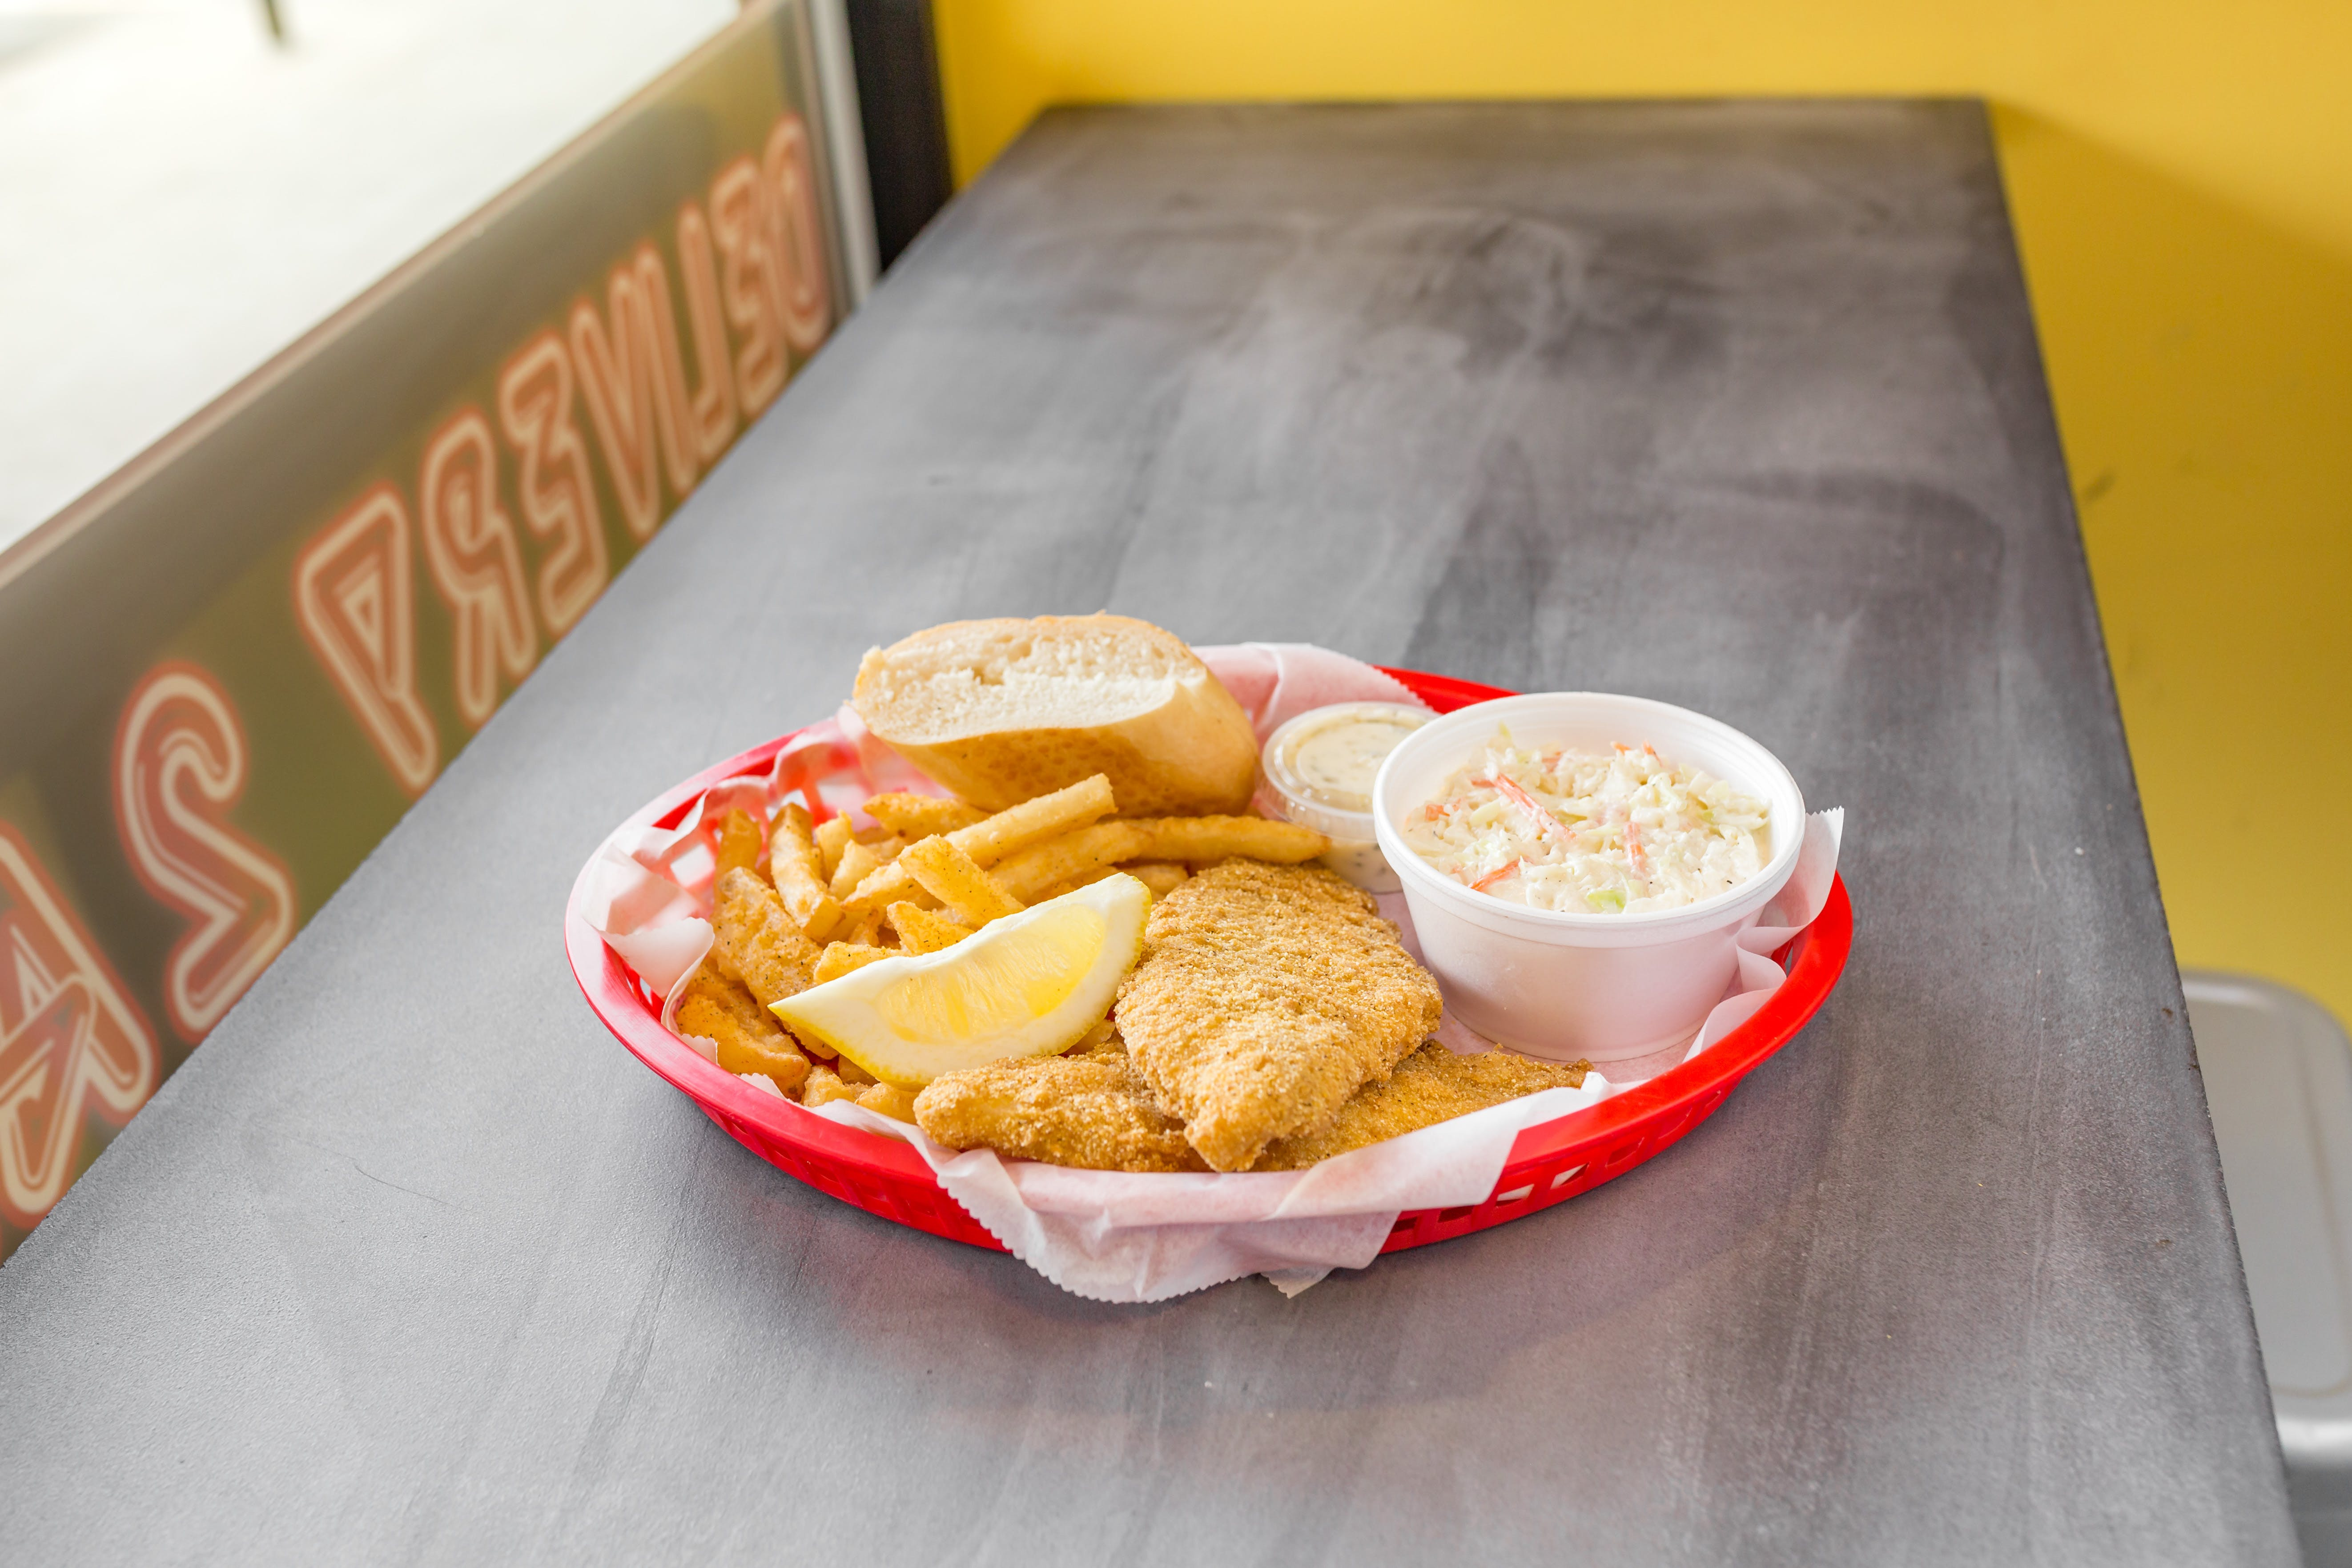 Large Catfish Dinner from Chubby's Cheesesteaks - Miller Park Way in Milwaukee, WI